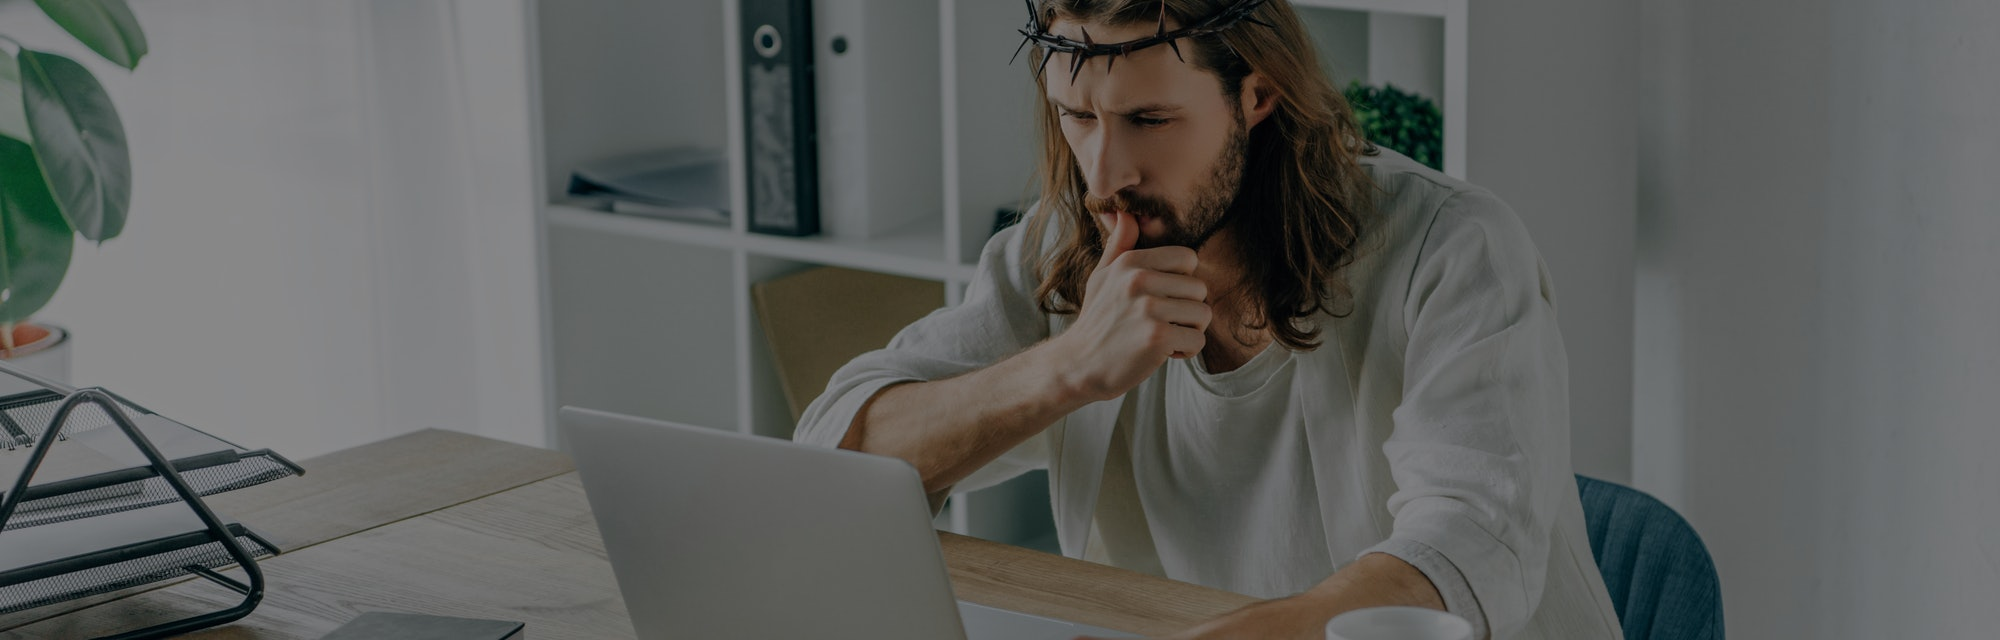 pensive Jesus in crown of thorns using laptop at table in modern office